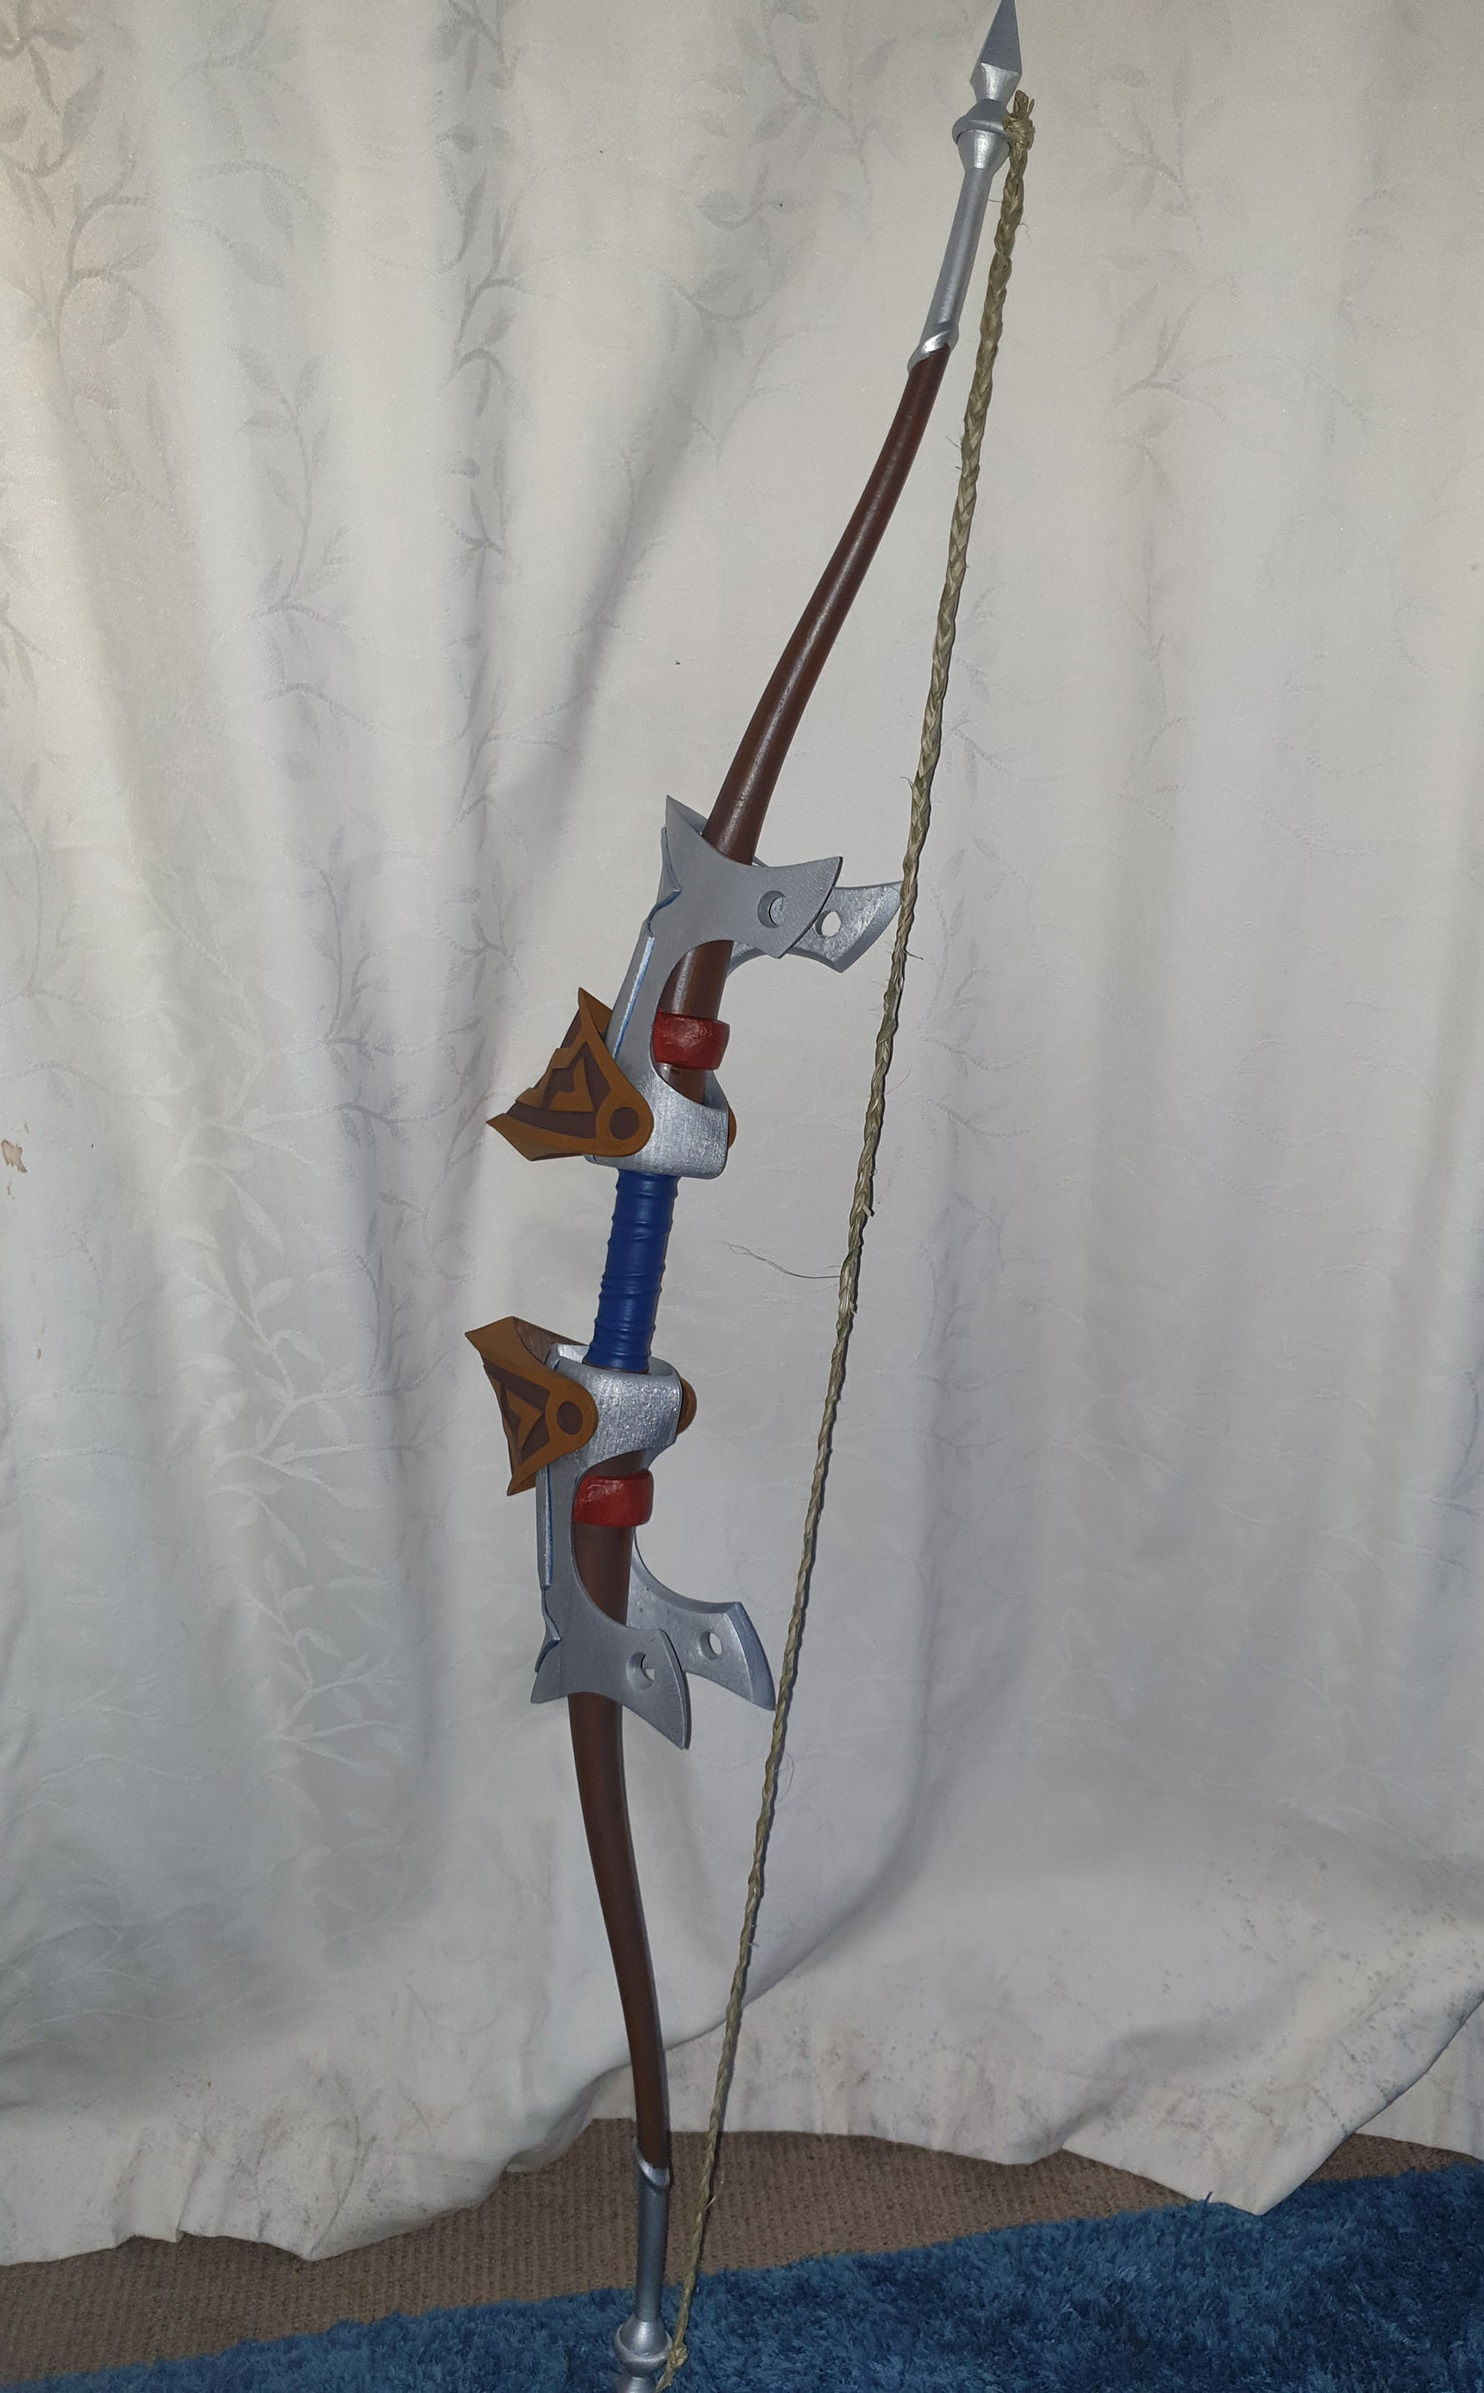 The Soldier's Bow is the latest 3D print from Breath of the